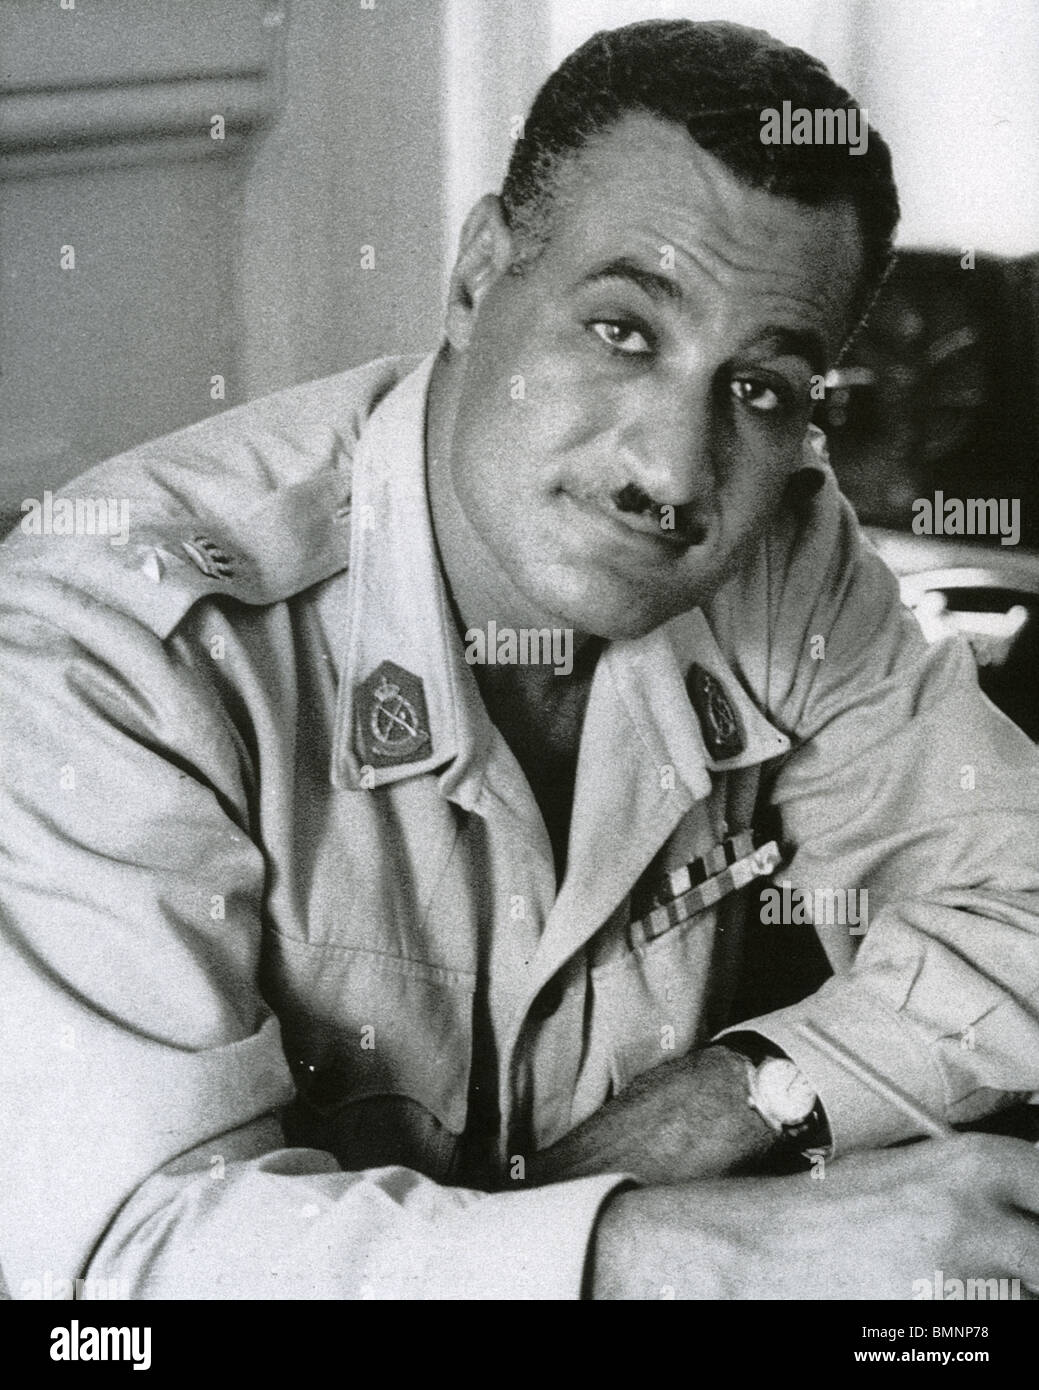 GAMAL ABDEL NASSER (1918-1970) was the second President of Egypt - Stock Image